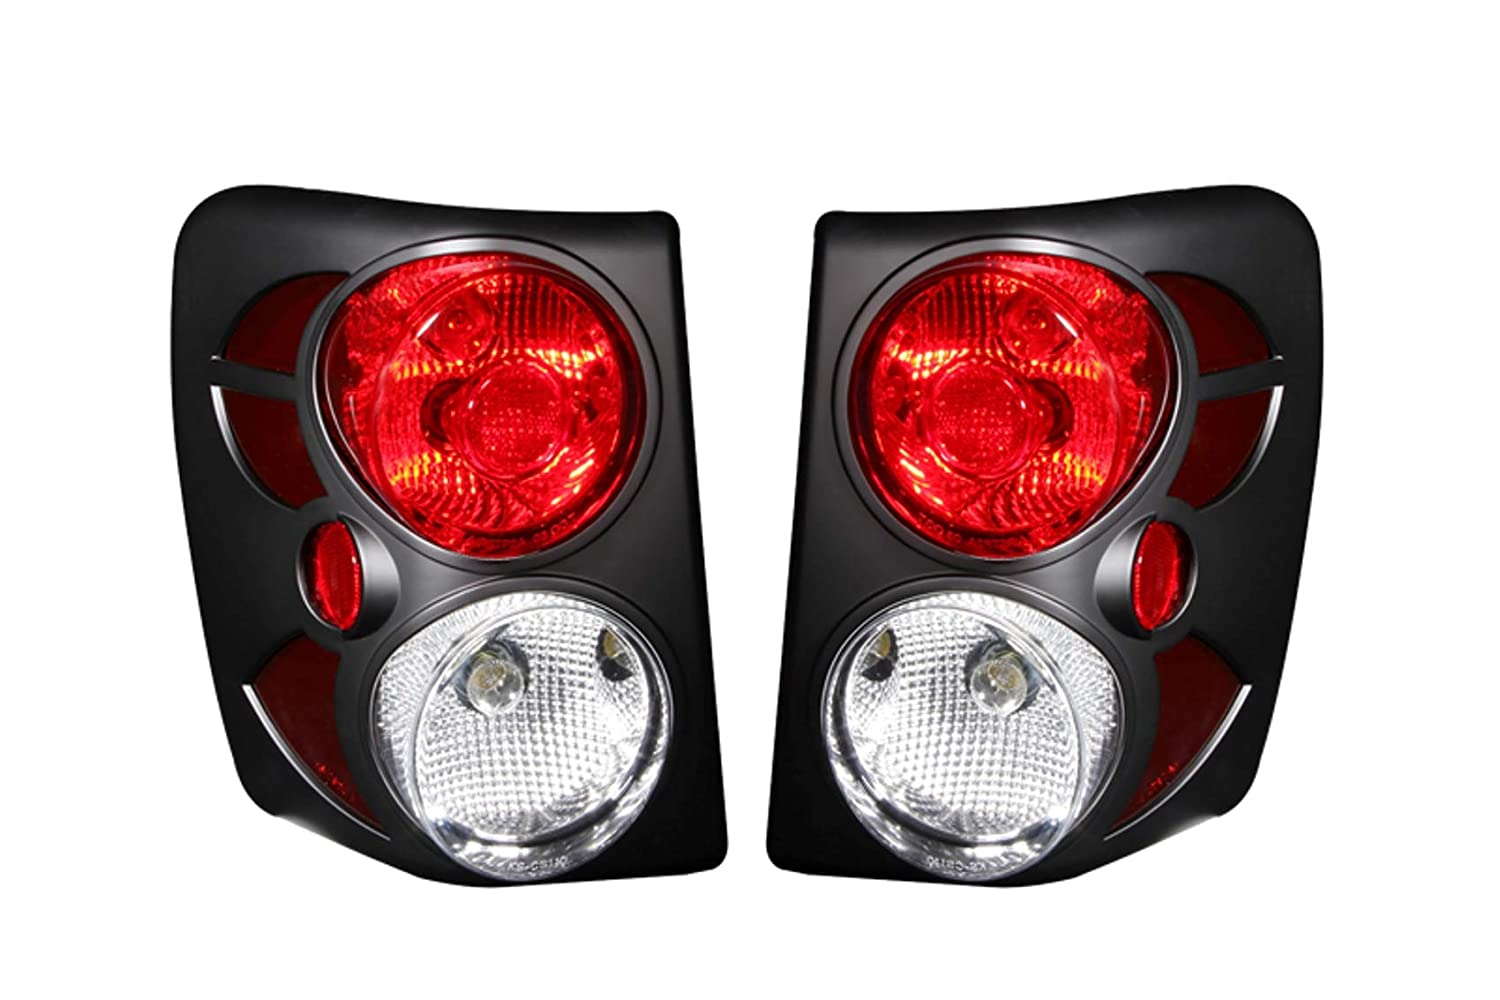 Sold in Pairs Anzo USA 211105 Jeep Grand Cherokee Black Tail Light Assembly